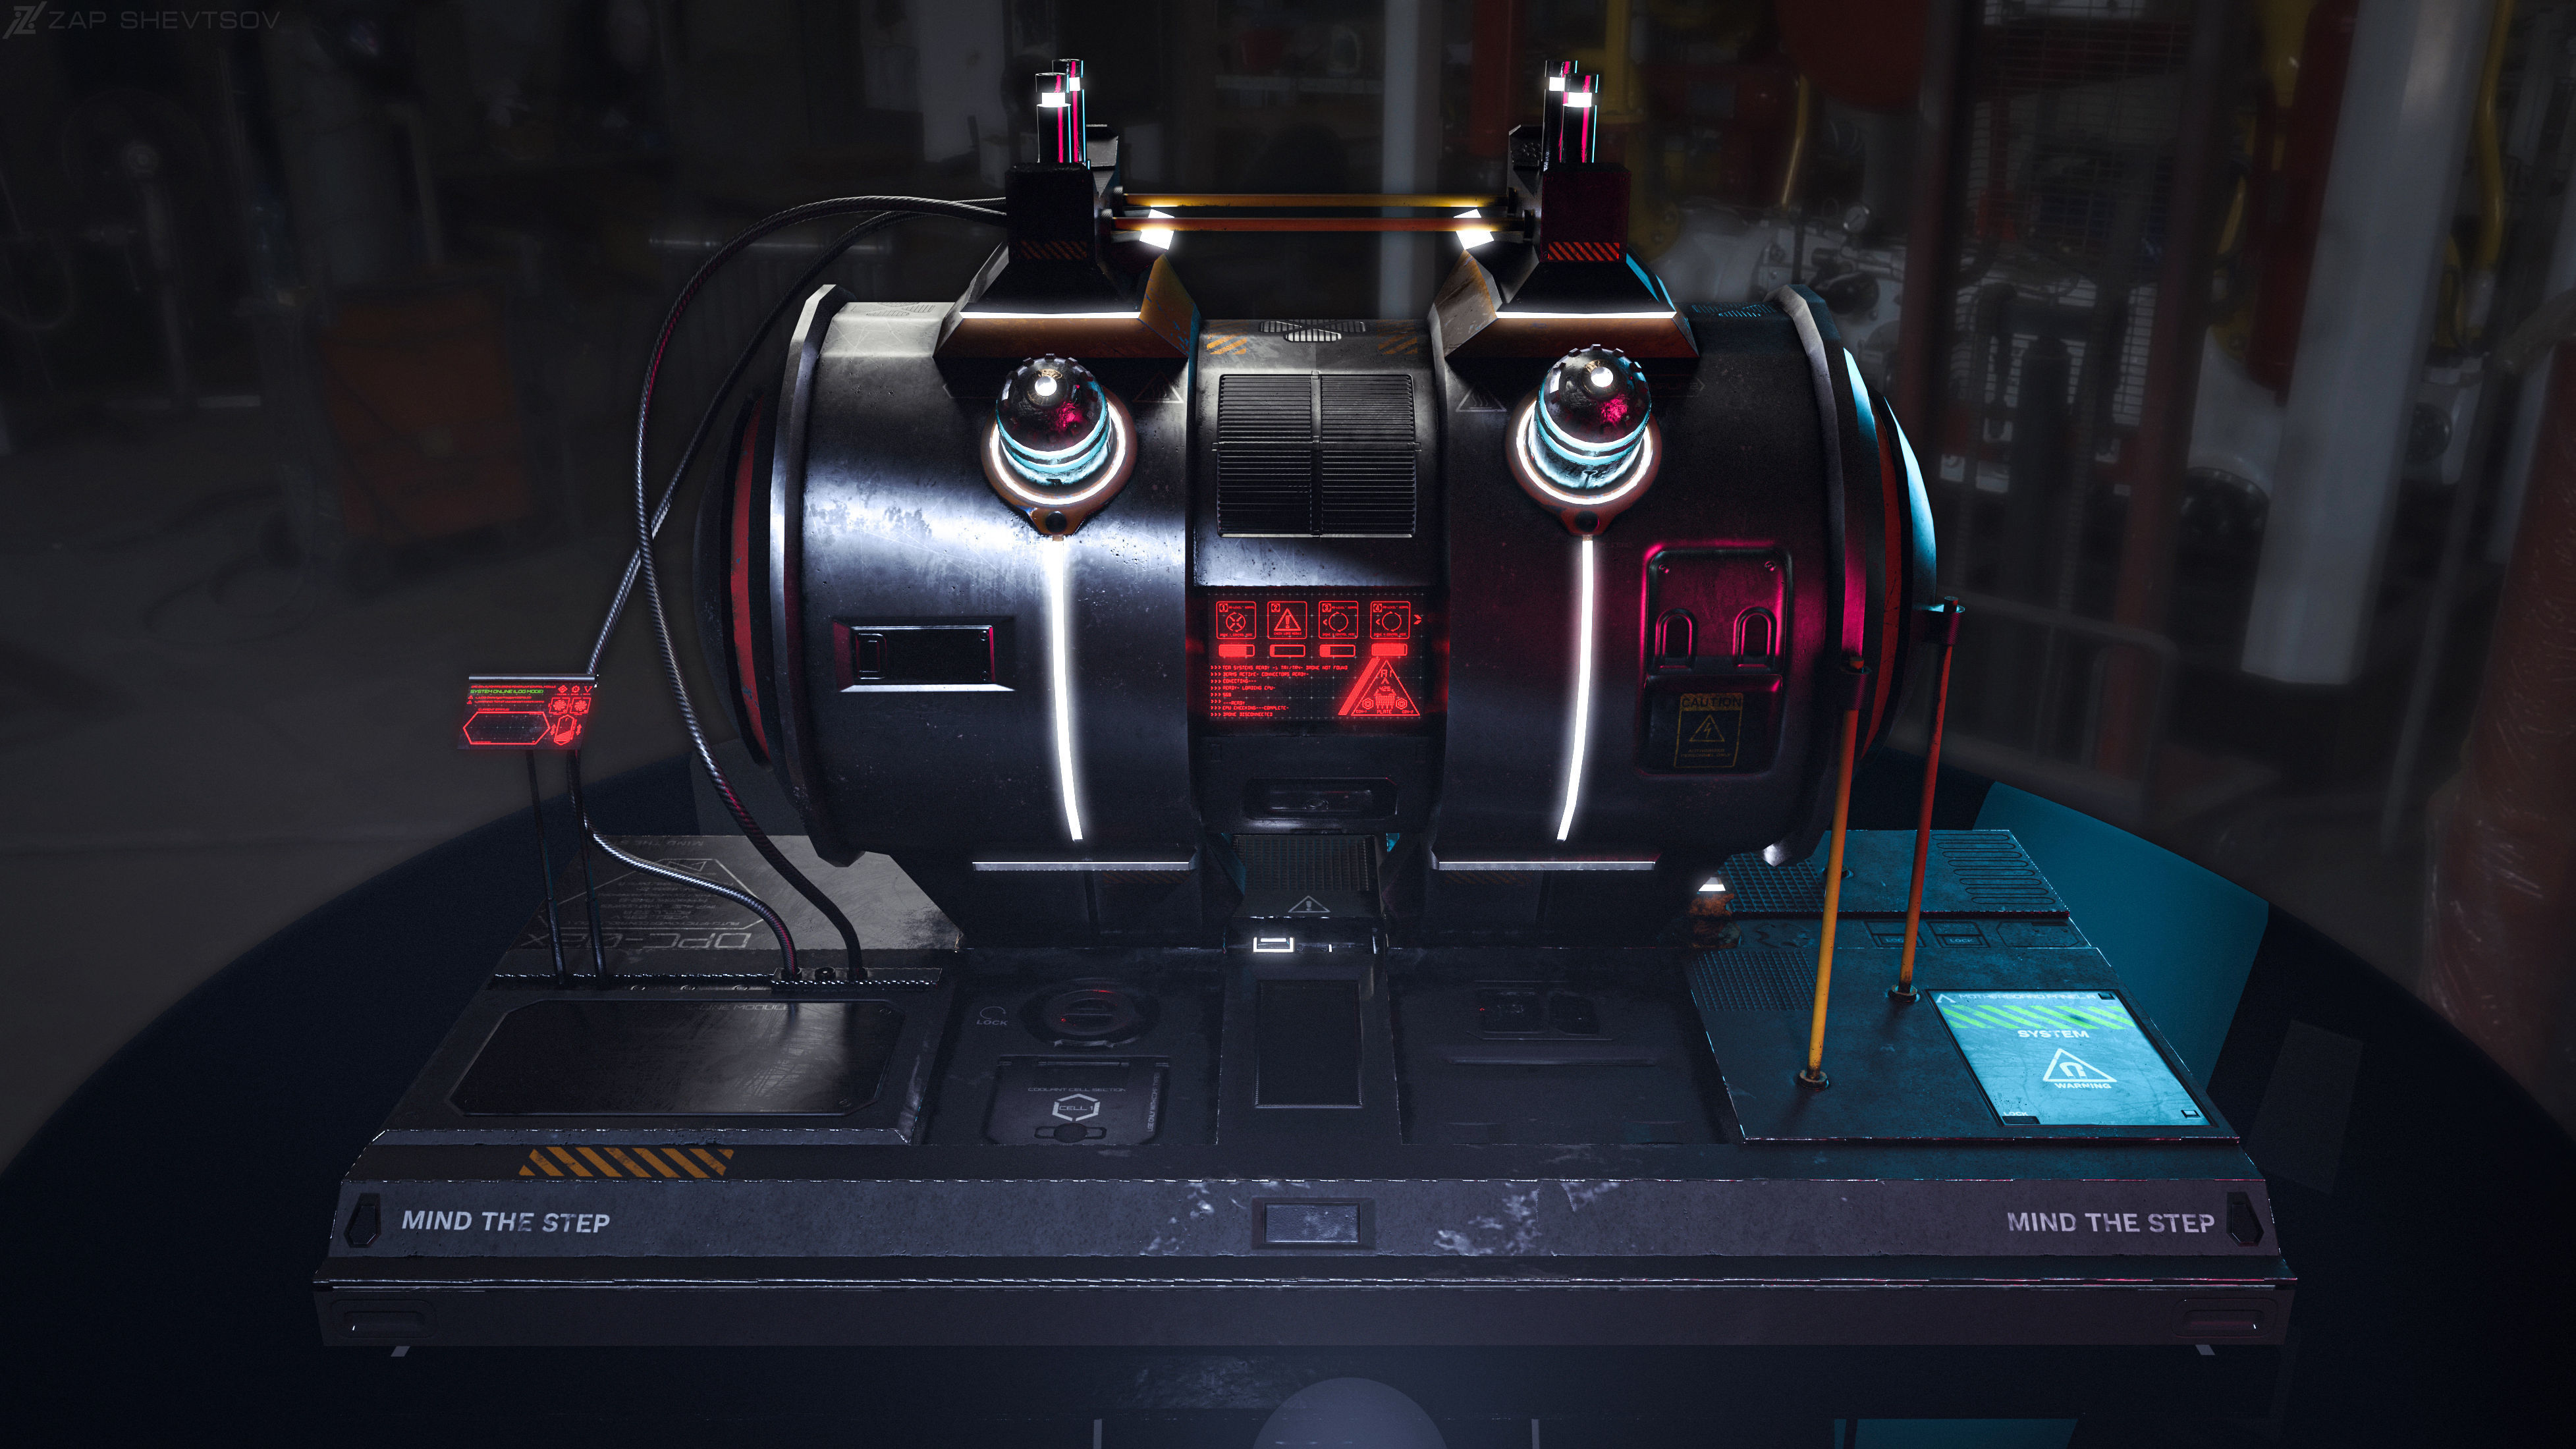 Sci-fi Cyberpunk fuel station for spaceships